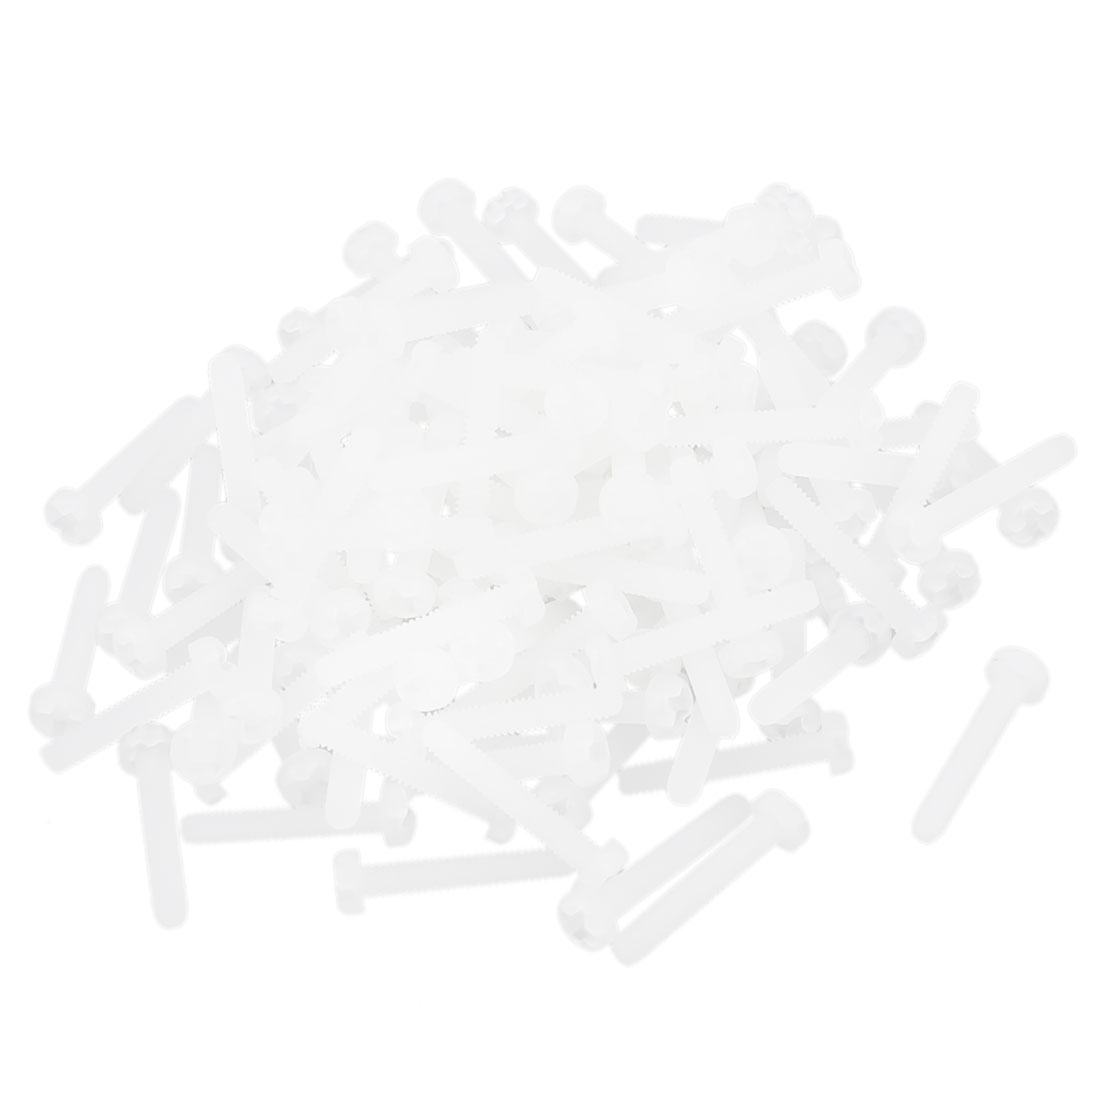 M2 x 12mm Nylon 6/6 Fillister Head Phillips Drive Machine Screw Off White 100pcs